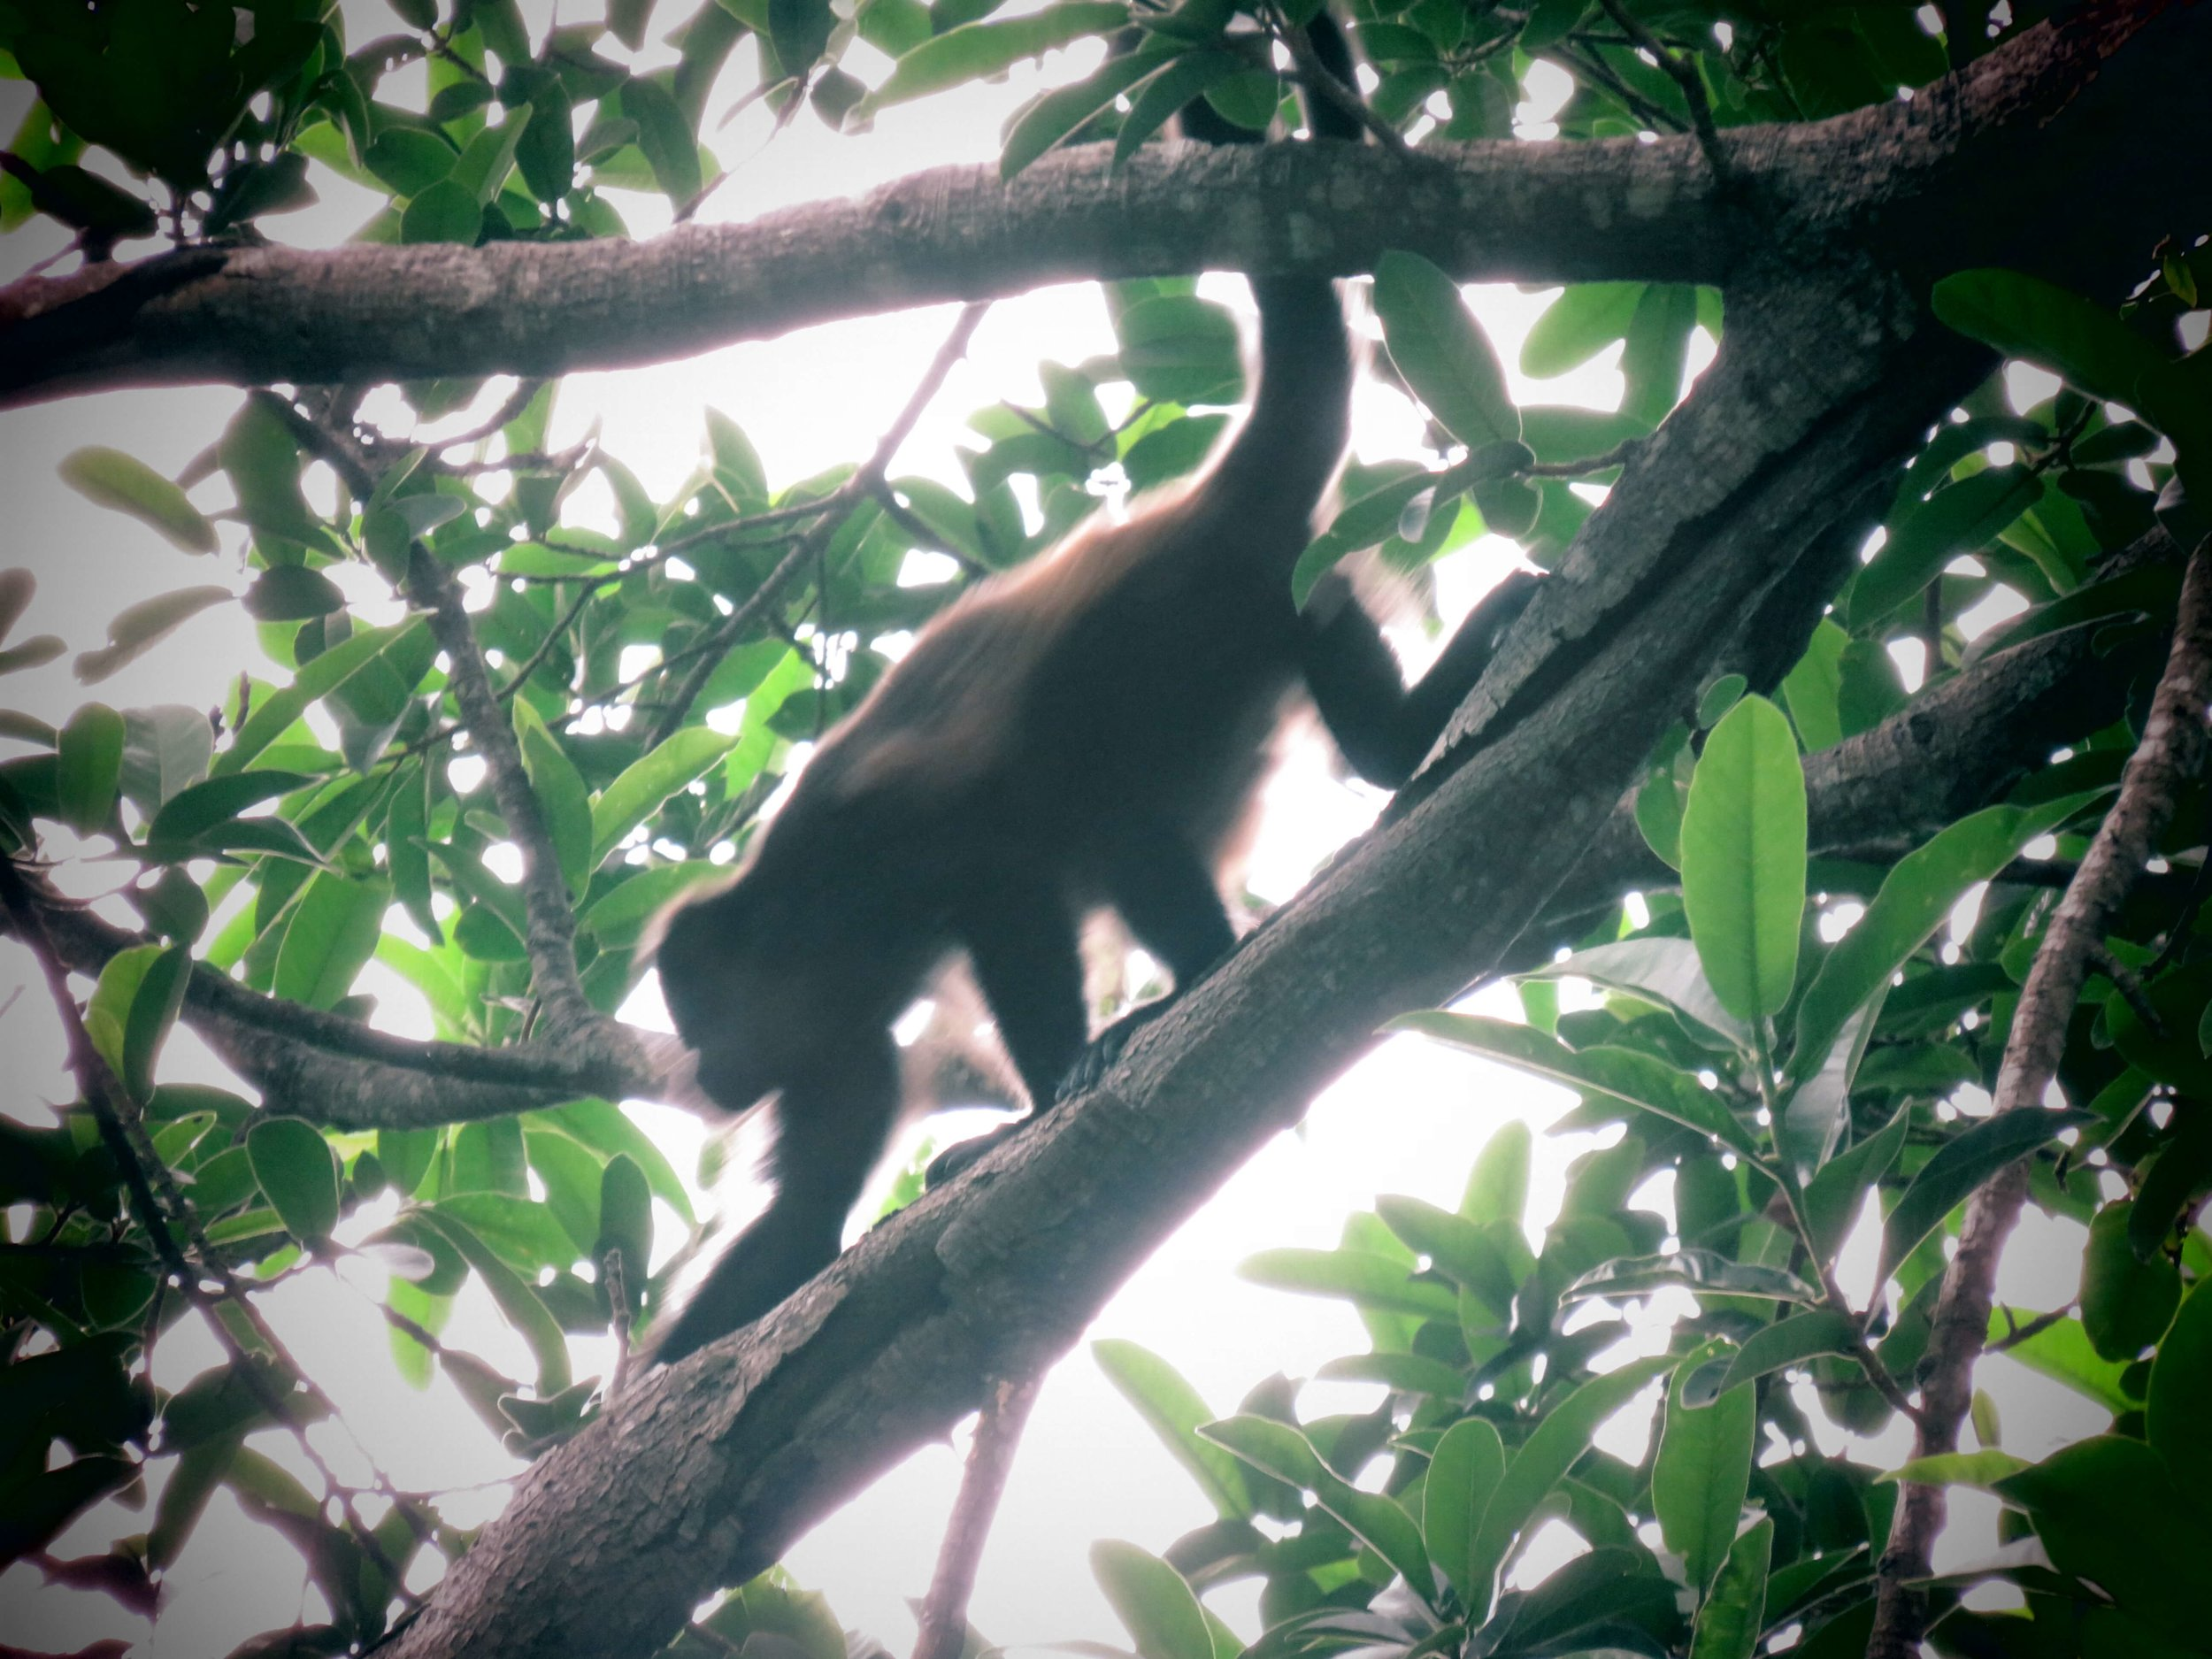 Howler monkeys frequently pass through